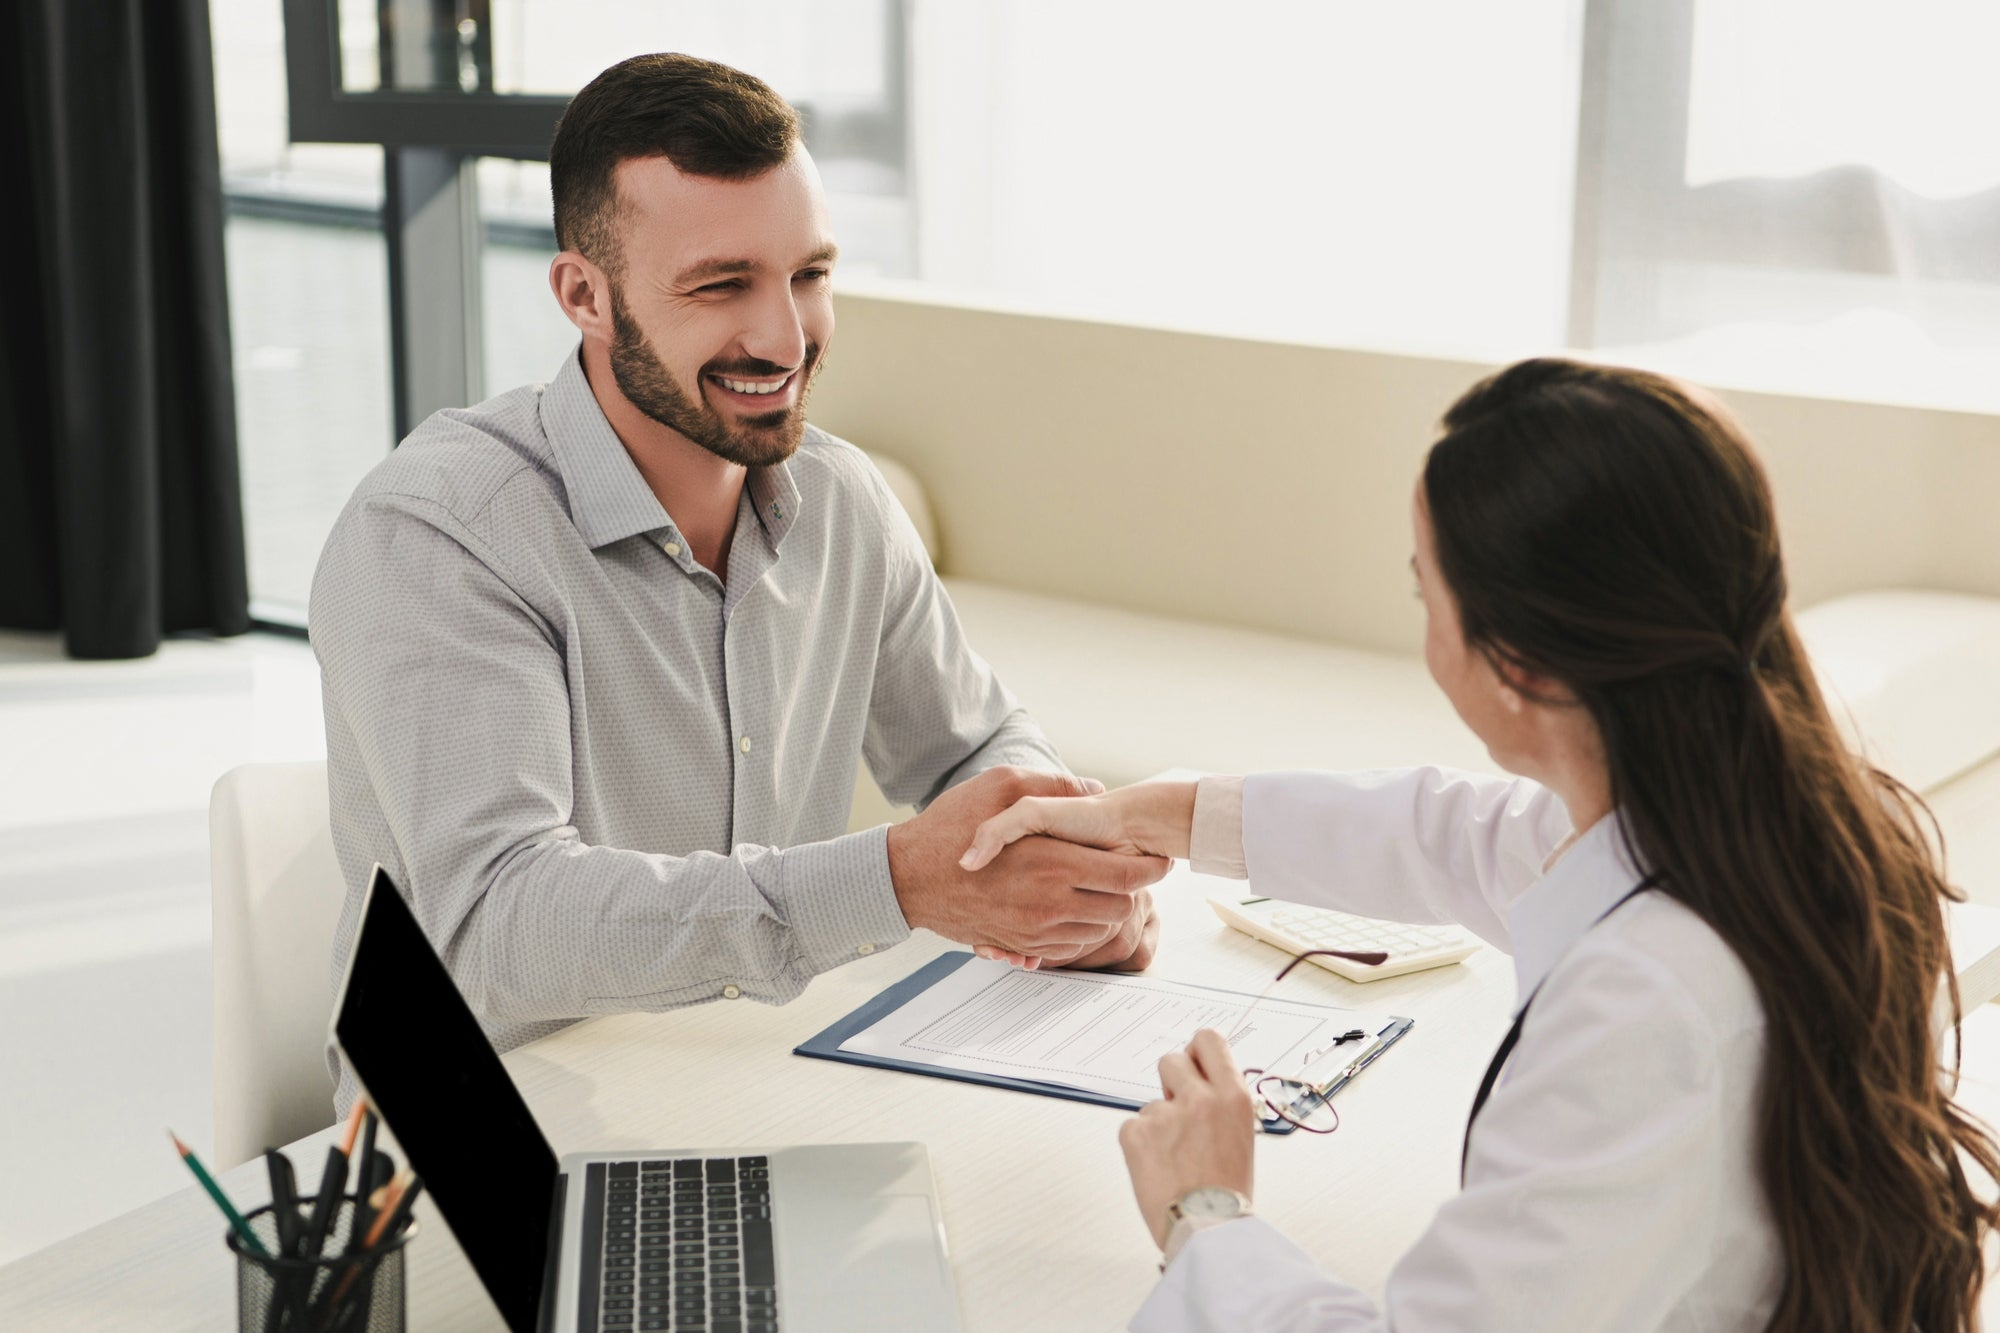 entrepreneur.com - Marisol García Fuentes - New outsourcing law. How to maintain the health benefits for your collaborators?